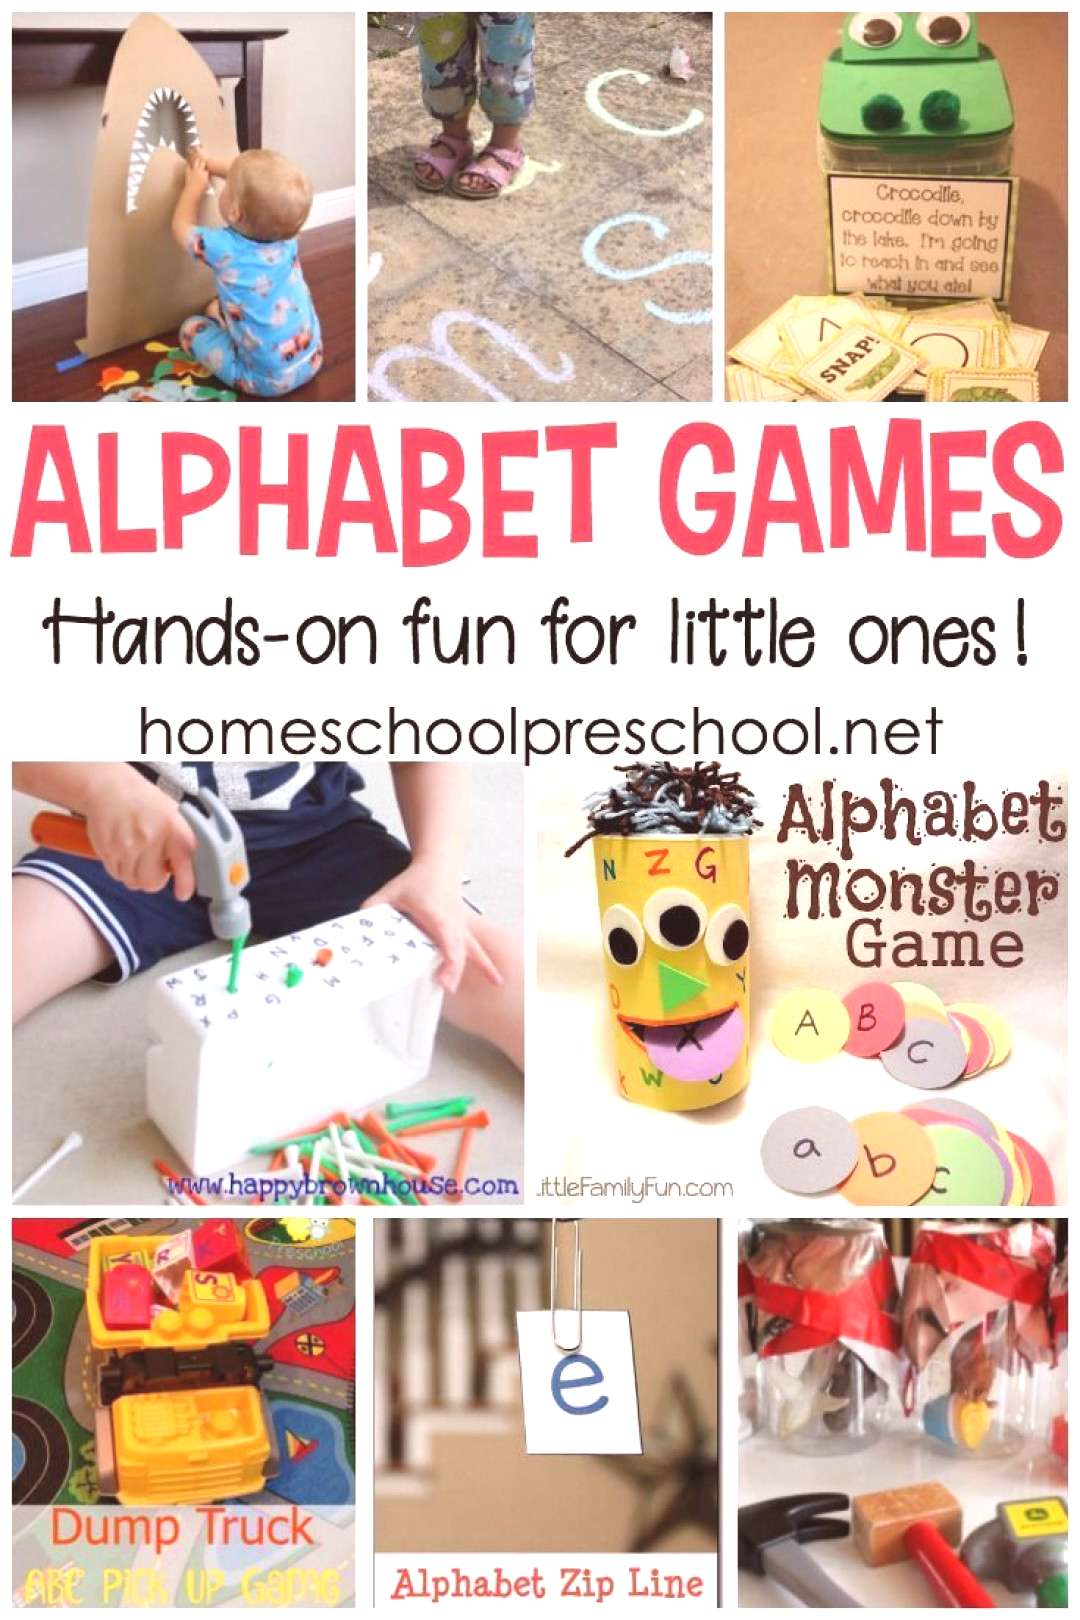 These hands-on alphabet games for preschoolers are perfect for teaching letter recognition, ABC ord